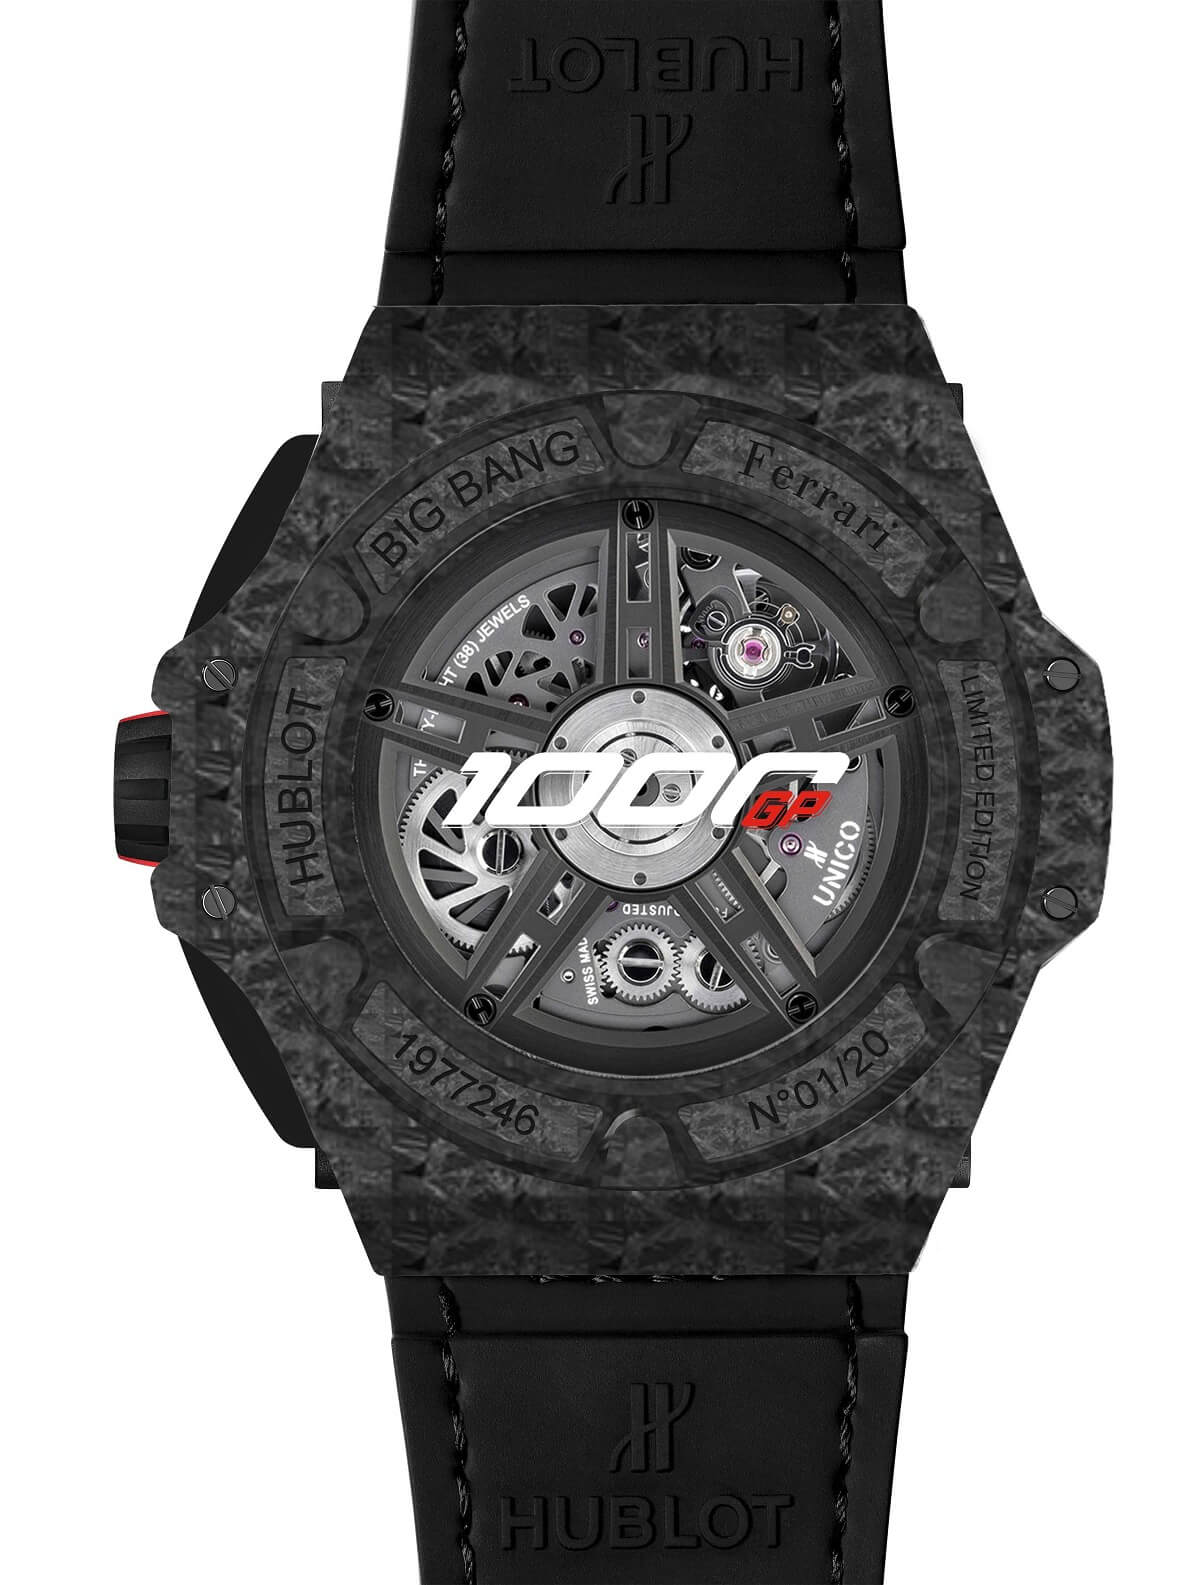 HUBLOT-BIG-BANG-Ferrari-1000-GP-5.jpg